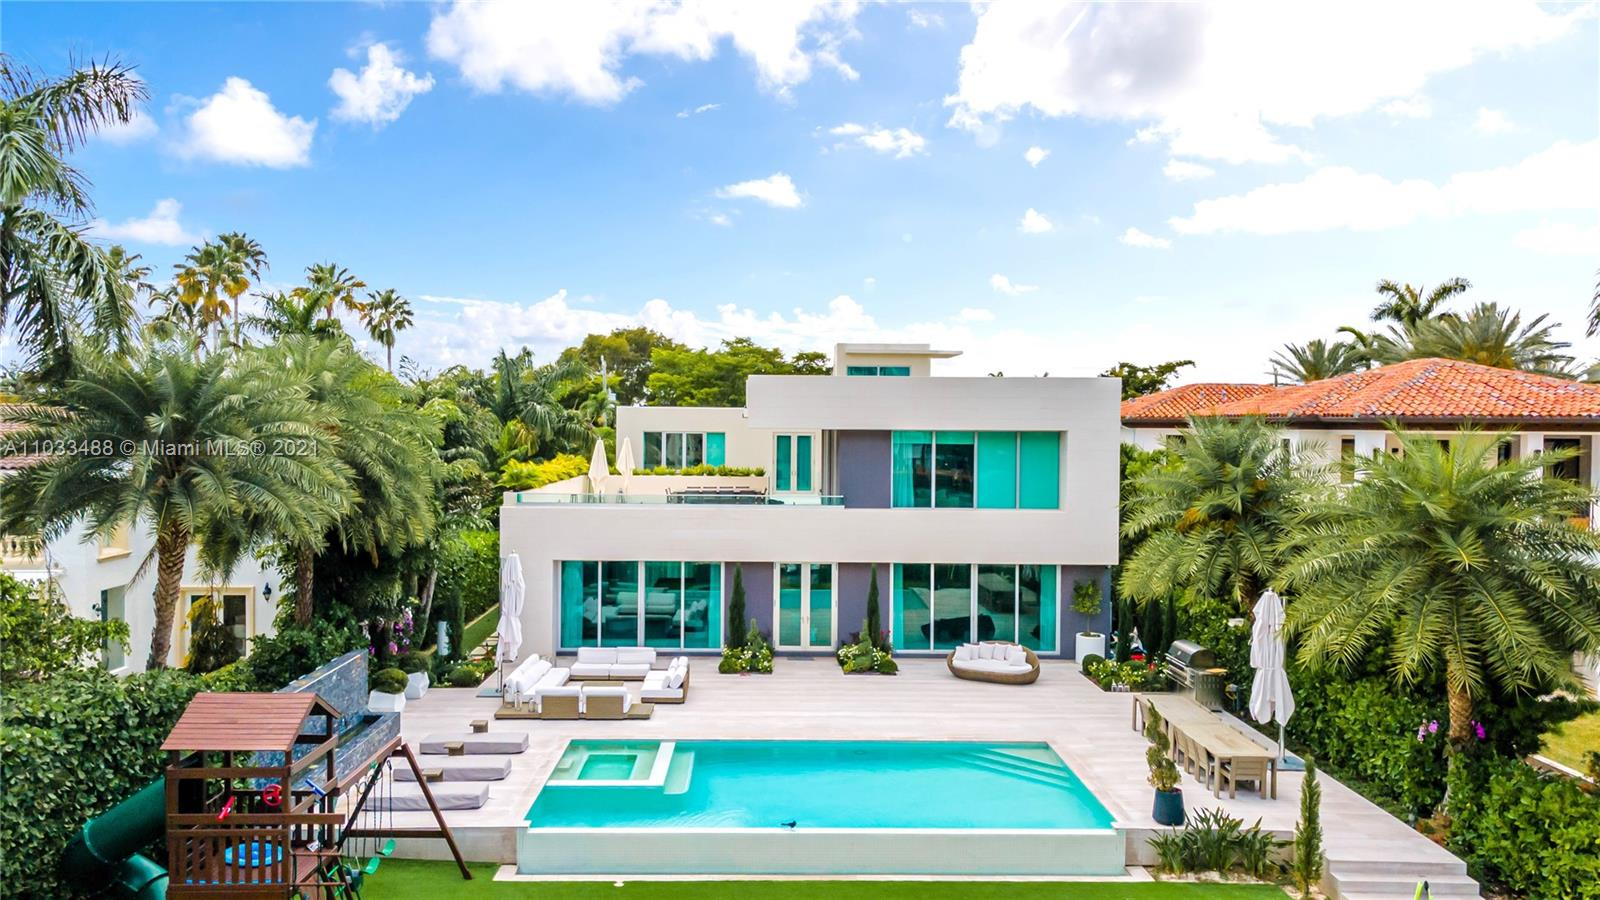 GORGEOUS MODERN WATERFRONT VILLA on Pine Tree Drive ideal for entertaining feat. over 8,000sf of living space and nearly 3,000sf of ext. living space with rooftop deck overlooking waterfront. Home features: Large Master Wing & 3 Large Guest Bedrooms on 2nd Floor, additional Guest Room Suite on 1st floor, Children's Play Room, Cinema Room, Staff Quarters & more. Gourmet Italkraft Kitchen, Wine Cellar, Wolf & Sub-Zero Appliances. Formal & Informal Living room areas with Sonos Sound system. Infinity Pool with waterfall & hot tub overlooking waterfront and lush tropical landscaping & gardens. 35' Dock with Shore Power + Bay & Ocean access with over 77ft of water frontage. Two car garage & enclosed driveway with space for an additional 5 vehicles.